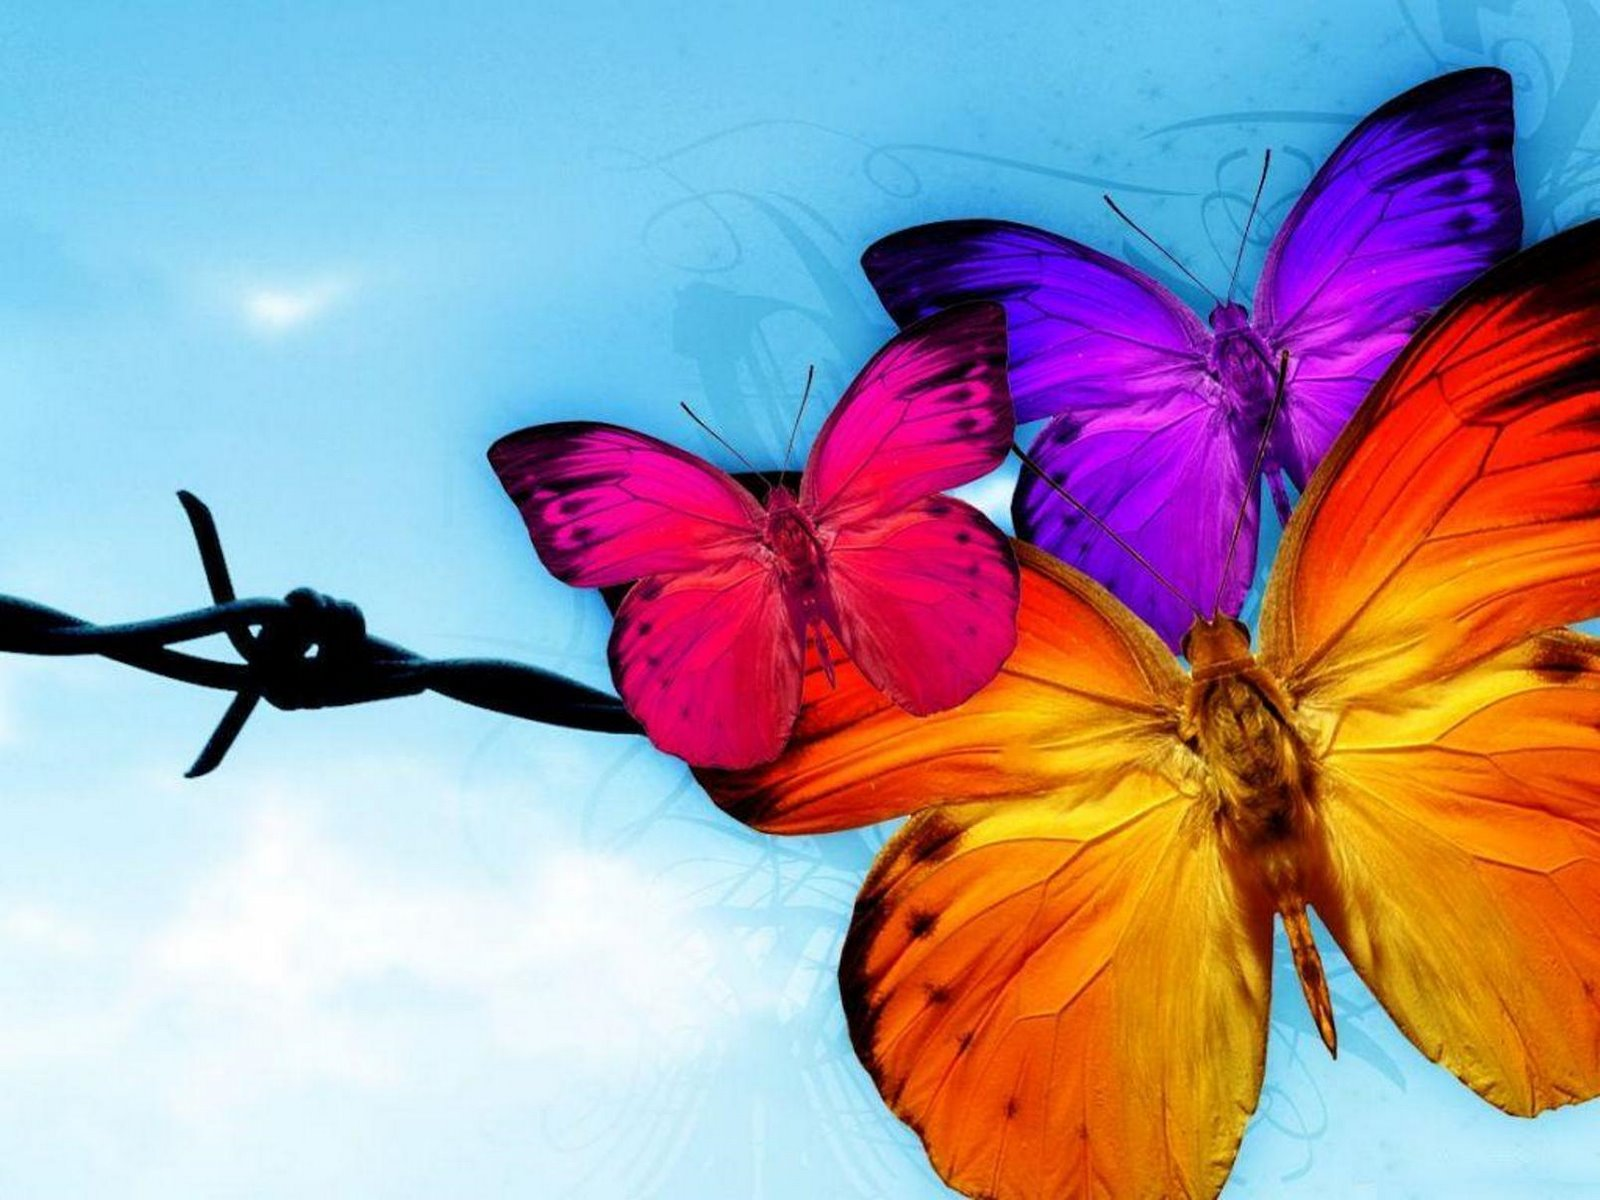 butterfly wallpaper Cute butterfly wallpaper Colorful butterfly 1600x1200